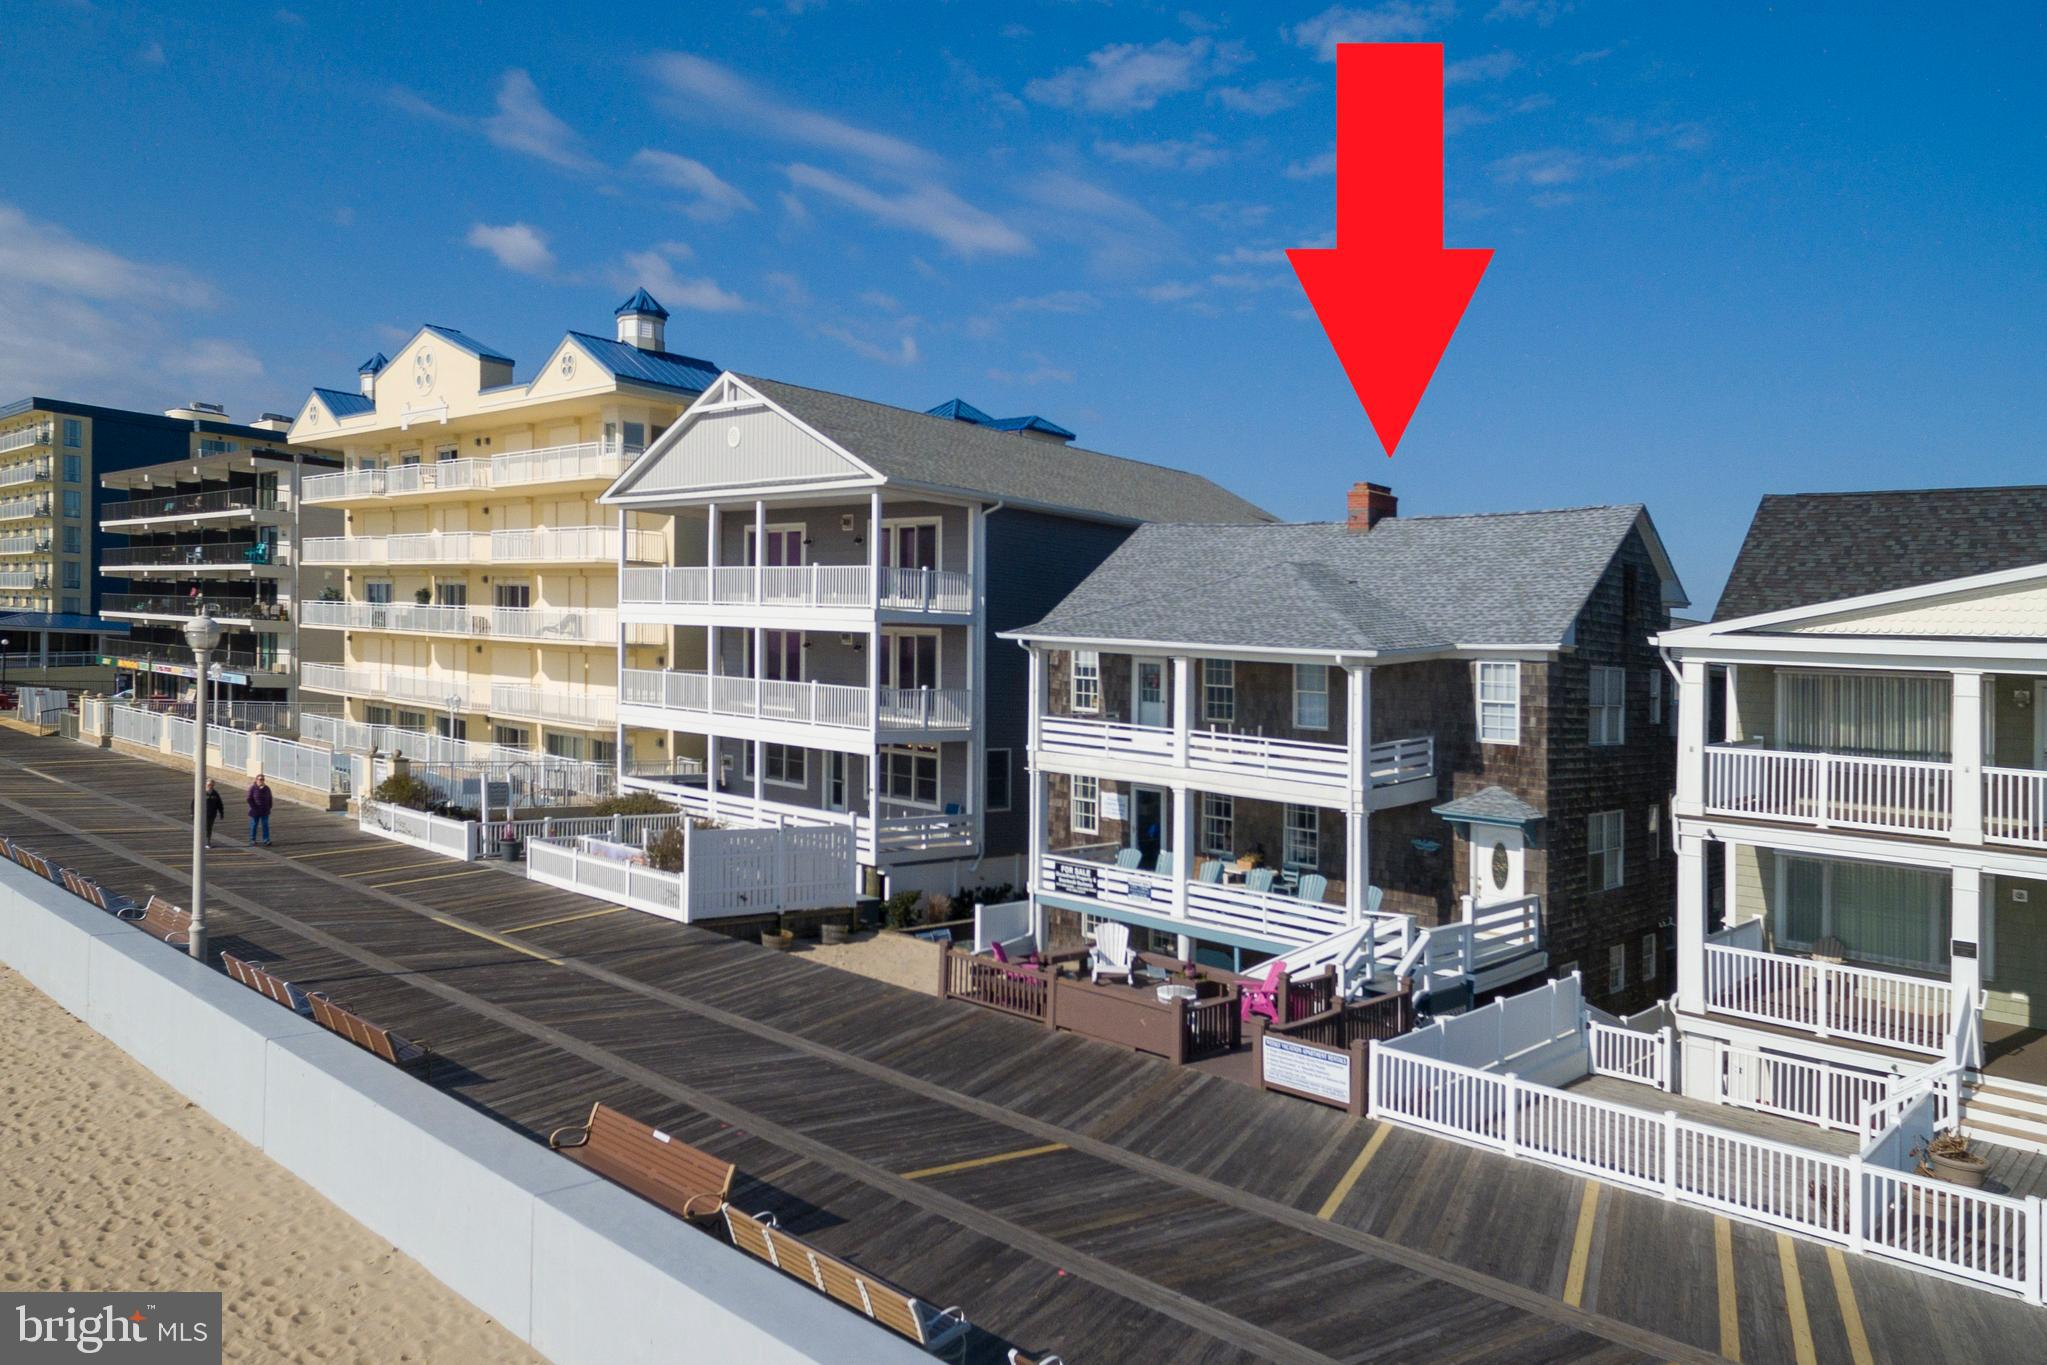 Investor Alert! Located on Ocean City, Maryland's world-famous boardwalk, this spacious oceanfront apartment building holds endless opportunities. This 6000 sq. ft. building and 7100 sq. ft. lot features five separate apartments and 8 parking spaces making it an ideal opportunity or rental investment or reconstruction. The 3-story property includes a total of 15 bedrooms, 8 bathrooms, 5 kitchens, and oversized oceanfront porches with picturesque ocean views. Each unit is unique, incorporating hardwood floors, grand fireplaces, remodeled bathrooms, and updated kitchens. There are 2 oceanfront, 4 bedroom/2 bath units with expansive great rooms and dining rooms. 1 street level 4 bedroom/2 bath walkout with a private patio. 1 2 bedroom/1 bath street level and a 1-bedroom carriage house. The property has excellent rental potential. The second season rental income potential allows for a year-round income stream. Over $150,000 in renovation upgrades have been done in the past 7 years making it turnkey business ready the day of settlement. The 11-year-old roof offers defense against winds up to 140mps. Indulge in a piece of Ocean City's history or redevelop to suit your needs.